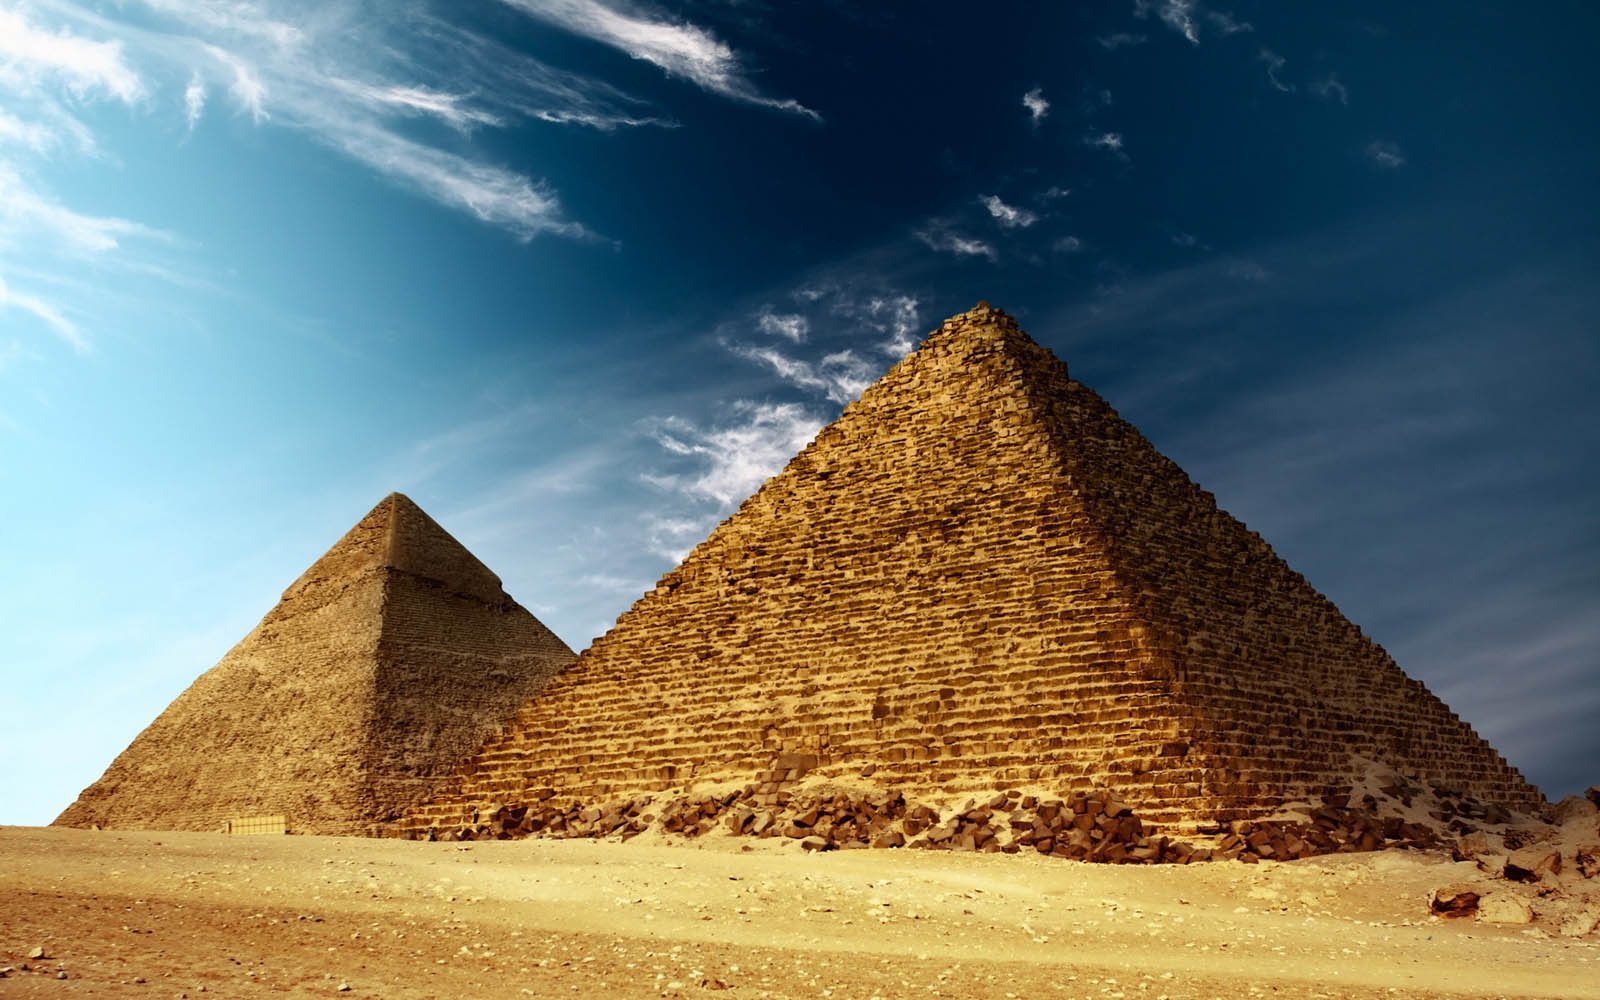 The pyramids of ancient egypt